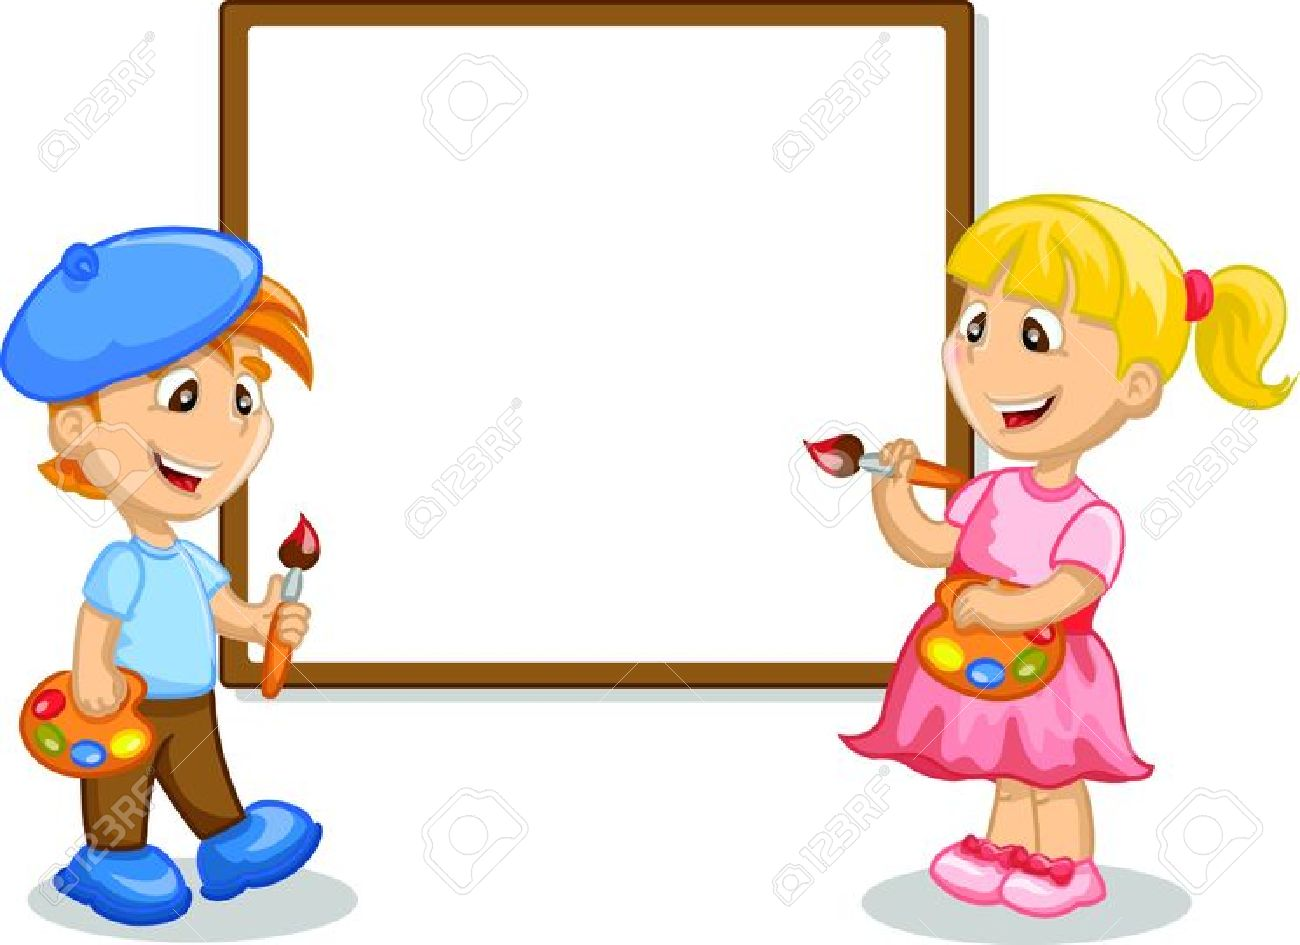 Kids Painting Clipart | Free download best Kids Painting Clipart on ...